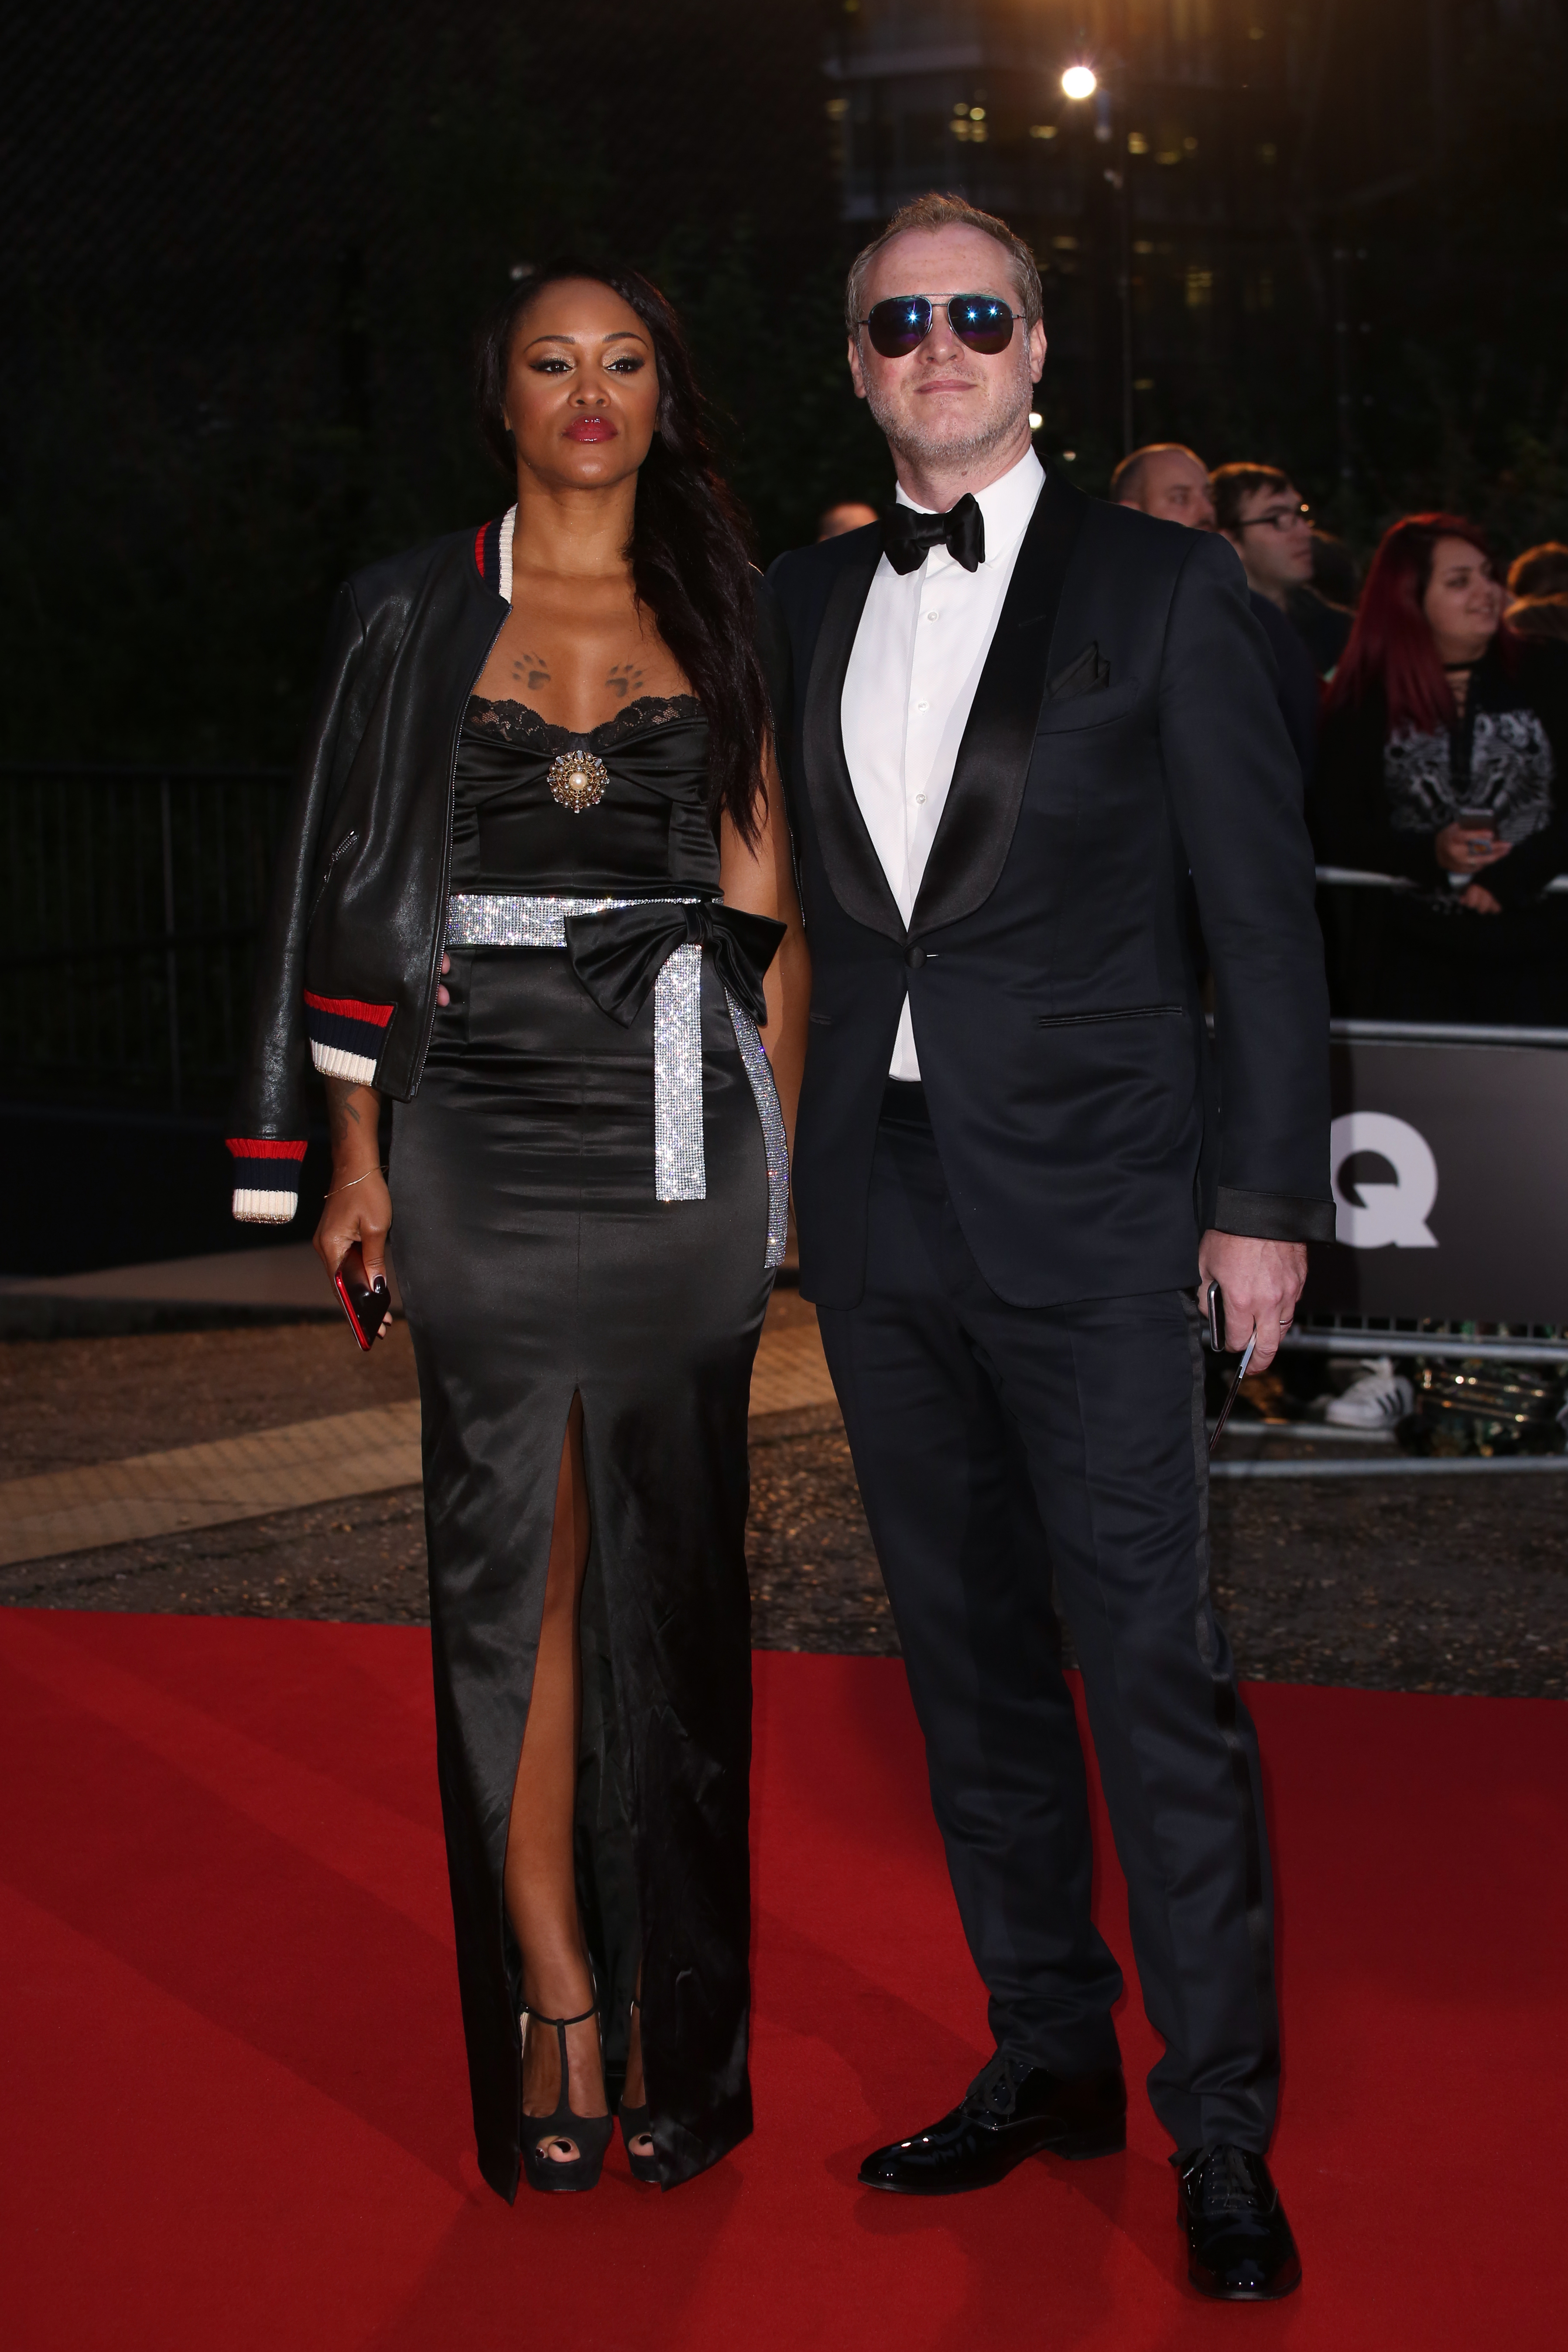 The GQ Awards 2017